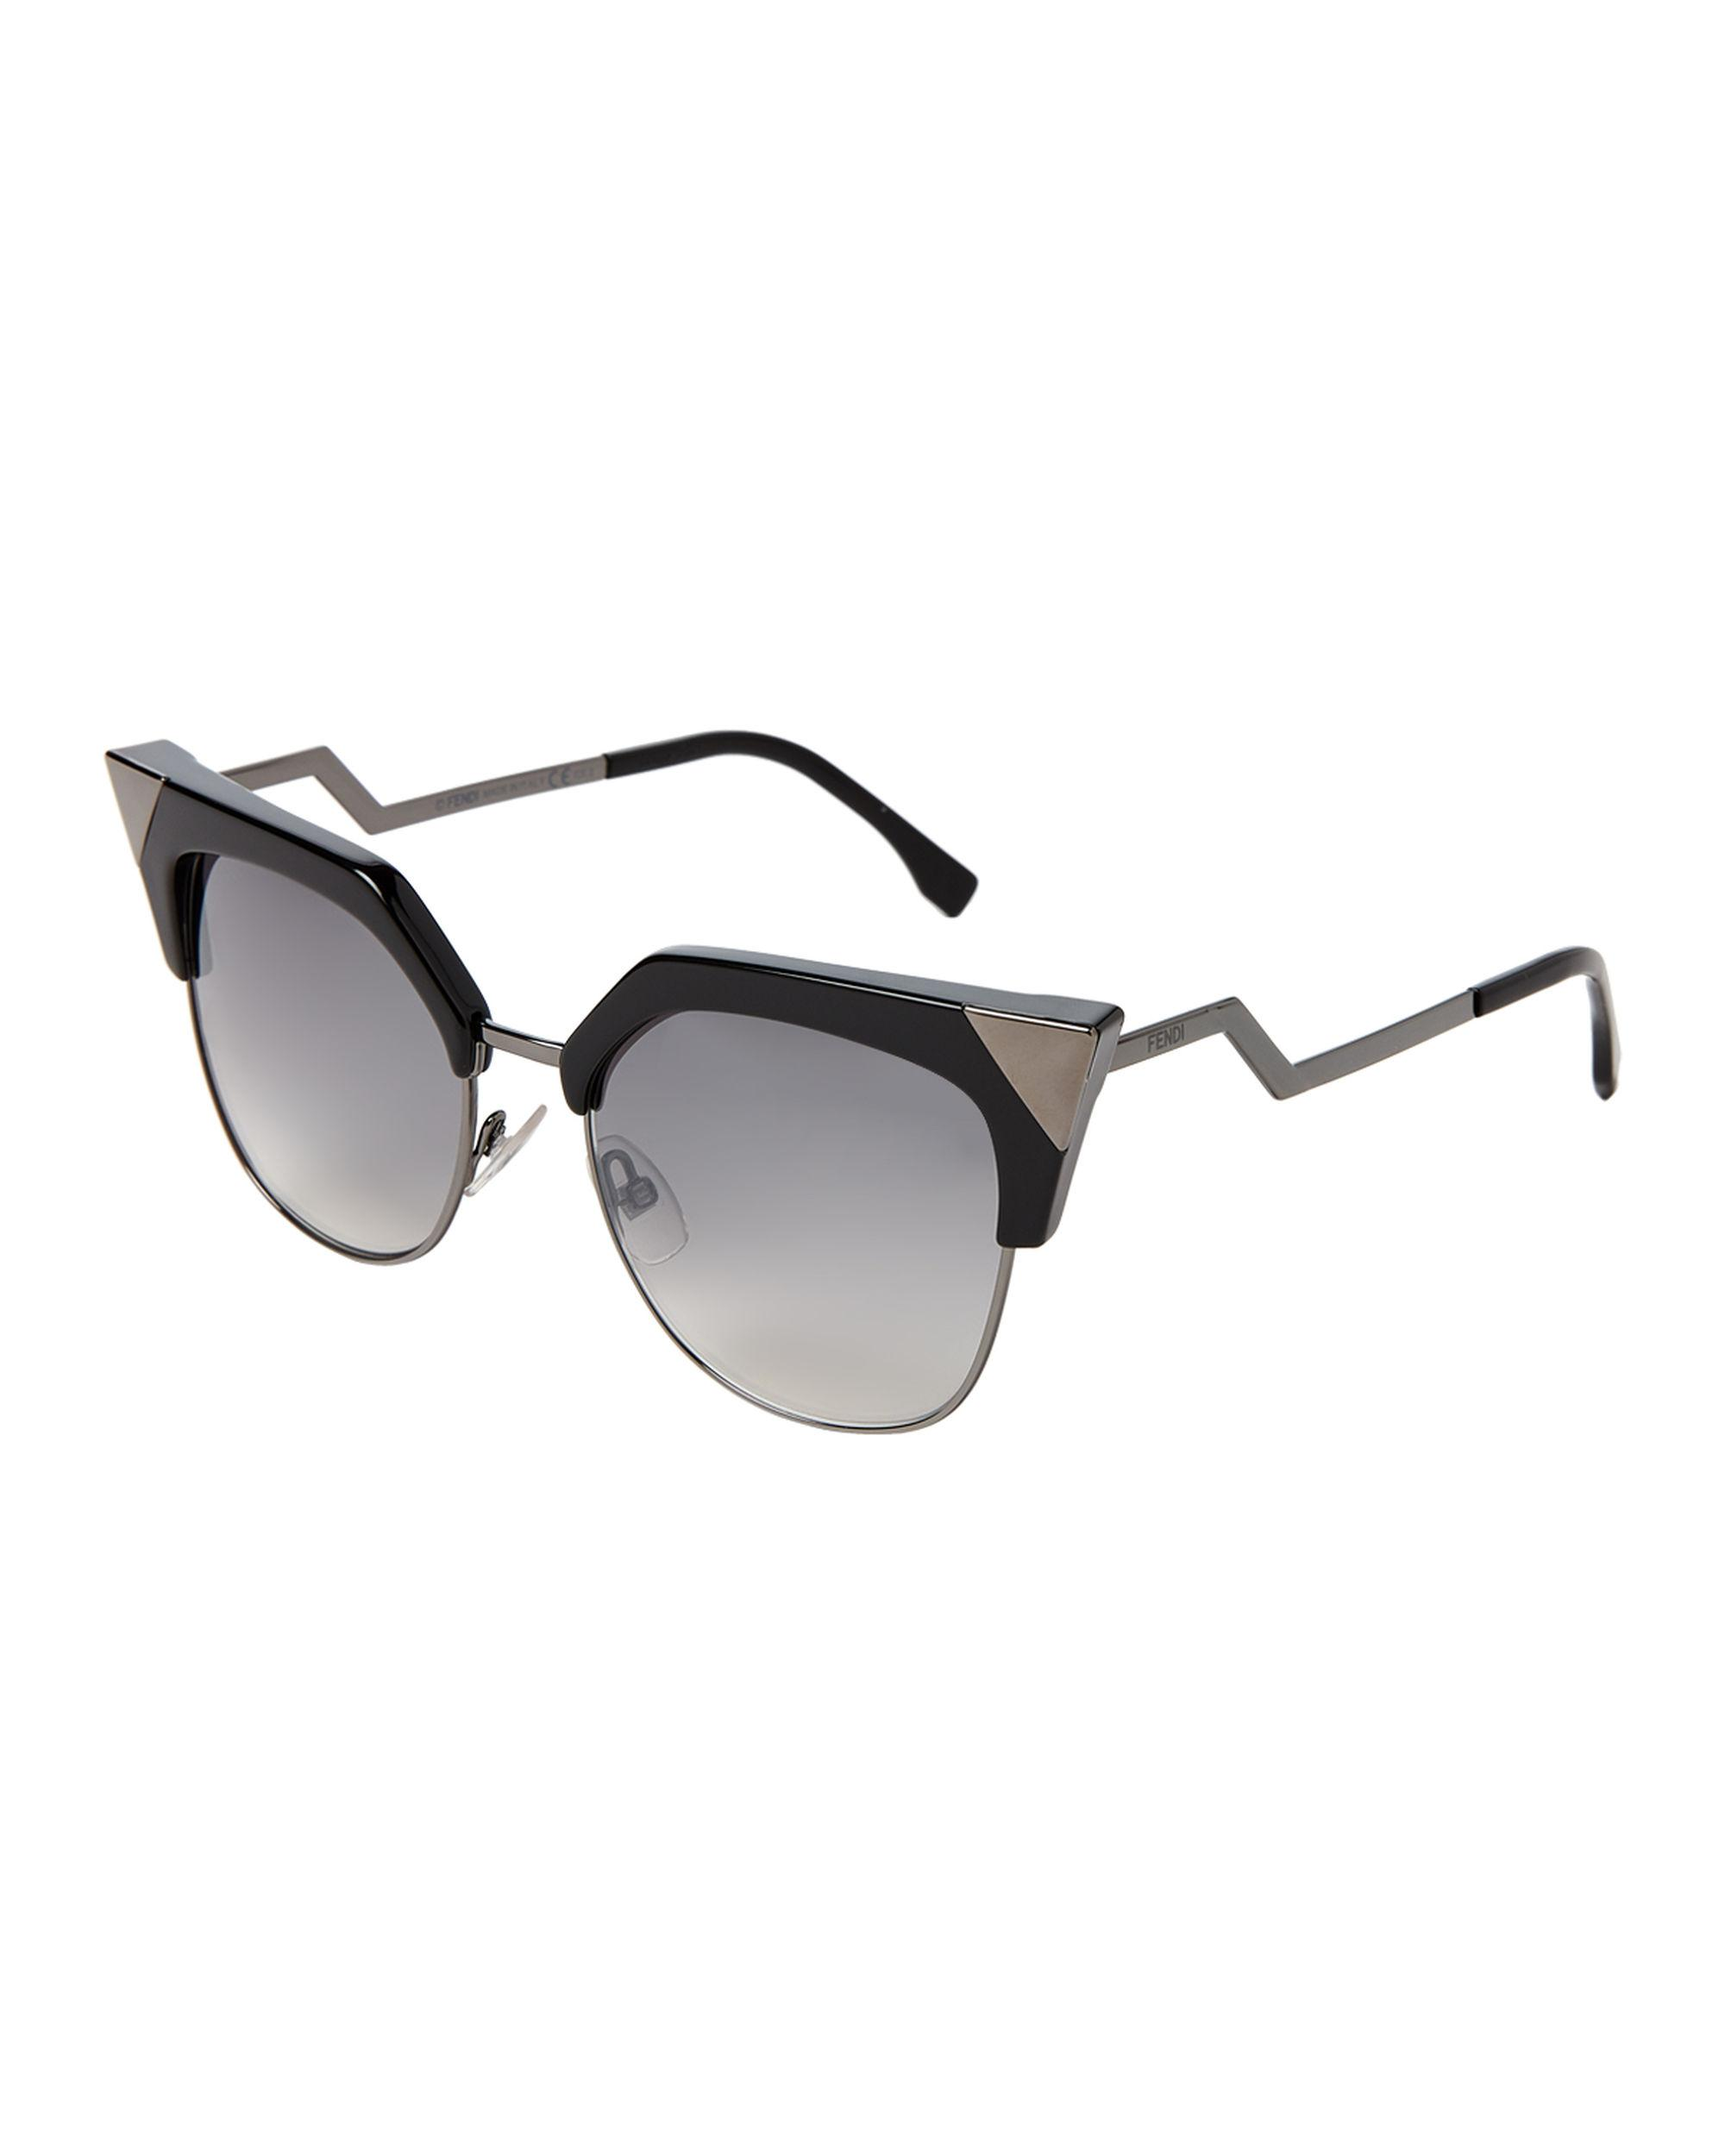 925776b03c Lyst - Fendi Ff 0149 s Black   Gunmetal-tone Cat Eye Sunglasses in Black